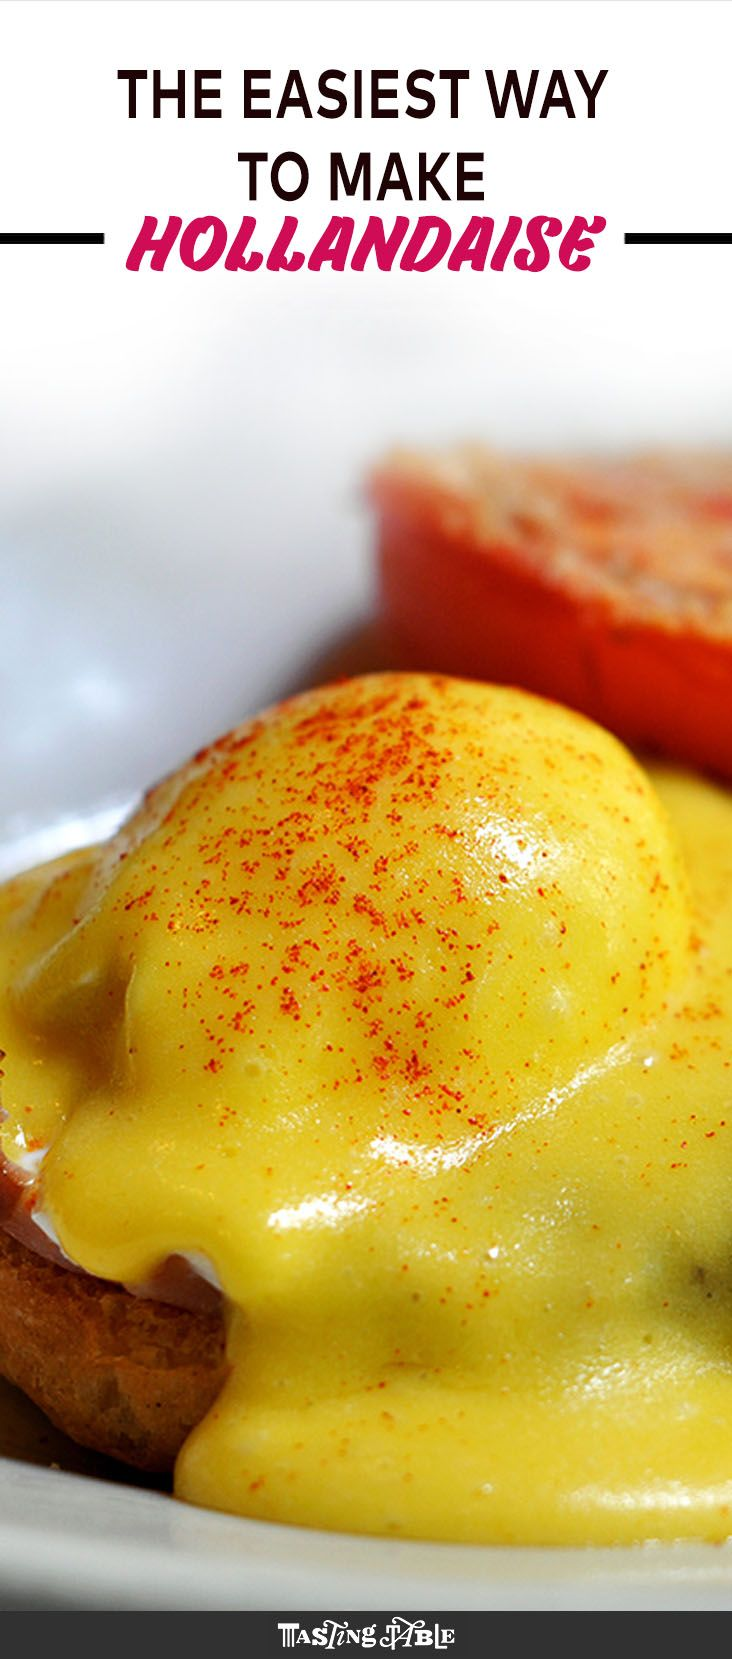 If you think you can't make hollandaise at home, think again. Our friends at Extra Crispy share an easy, foolproof hack.